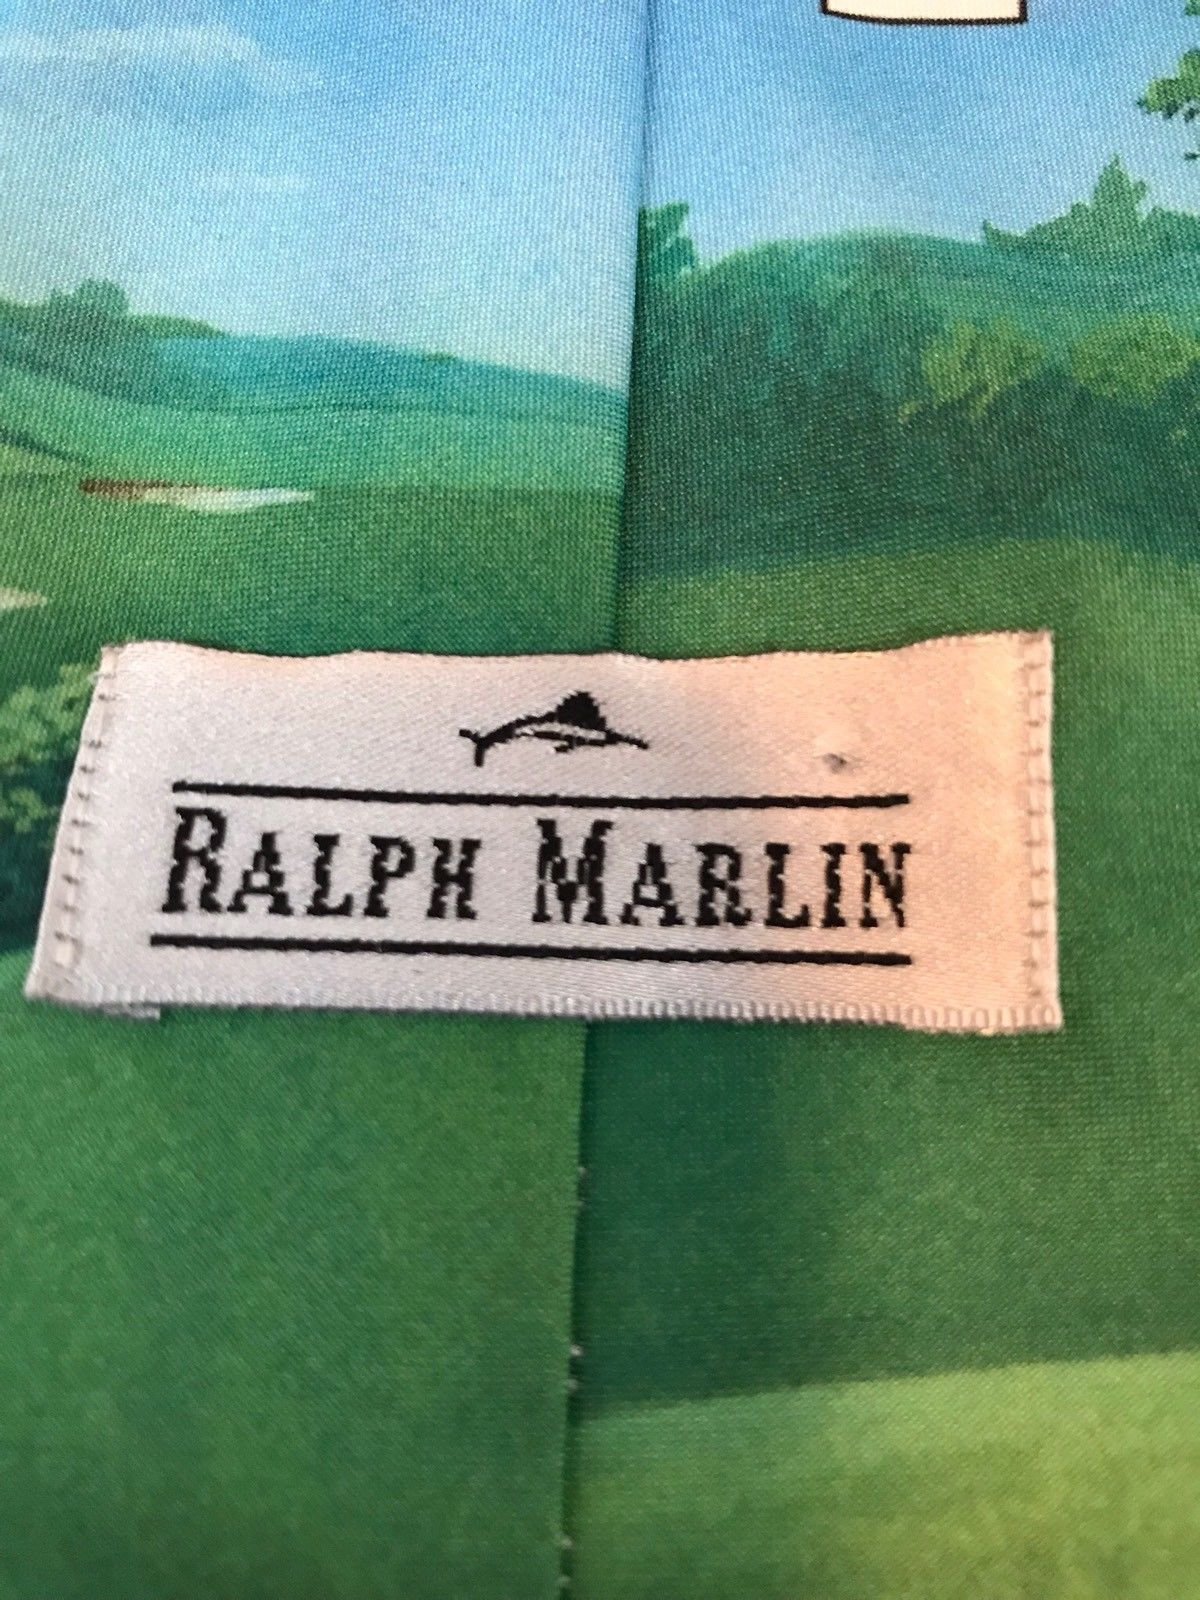 Three Stooges Golf Color Ralph Marlin Larry Moe & Curly 1996 Classic Neck Tie image 3